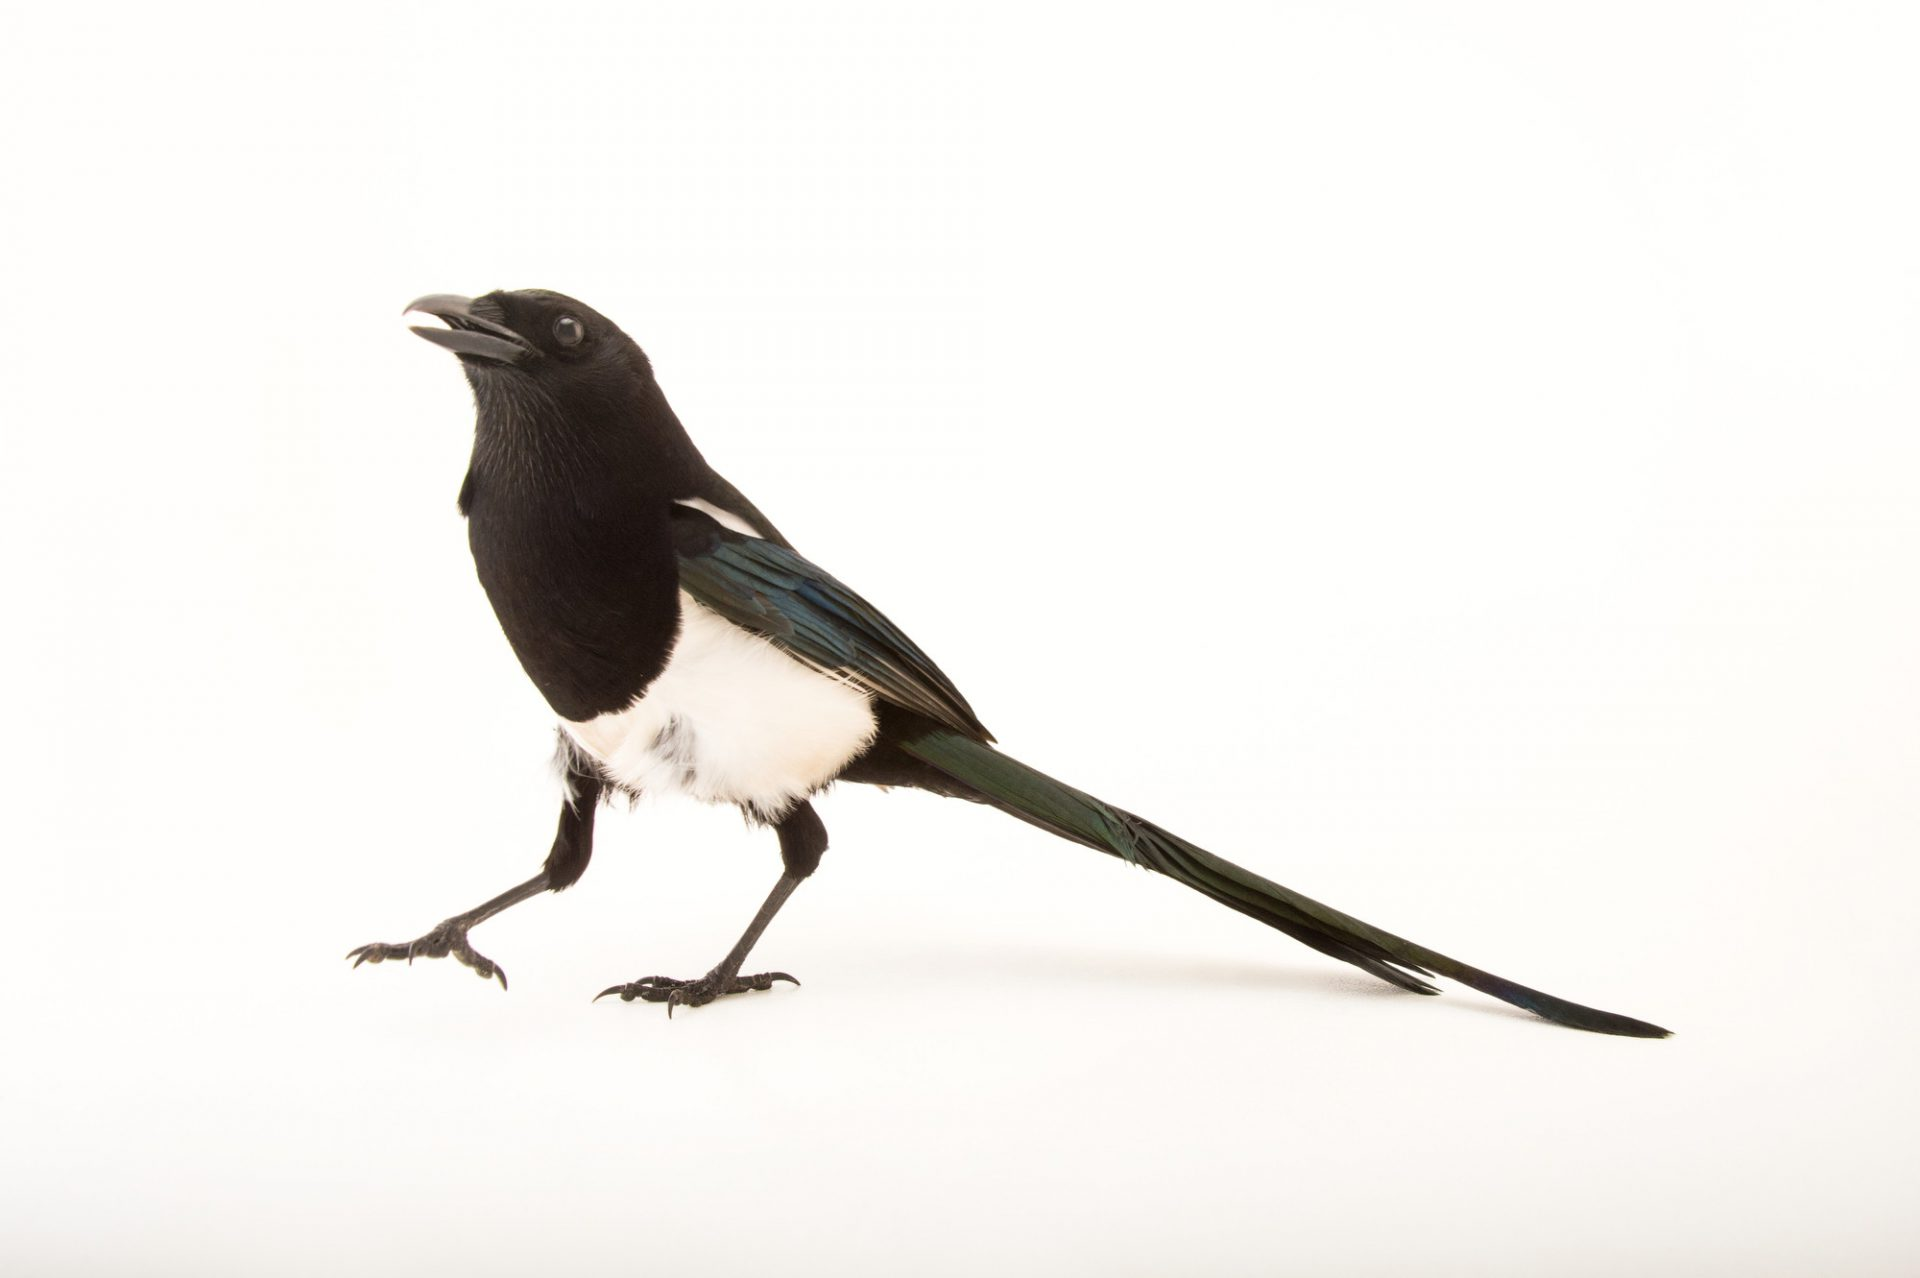 Photo: Black-billed magpie (Pica pica) at Tracy Aviary.